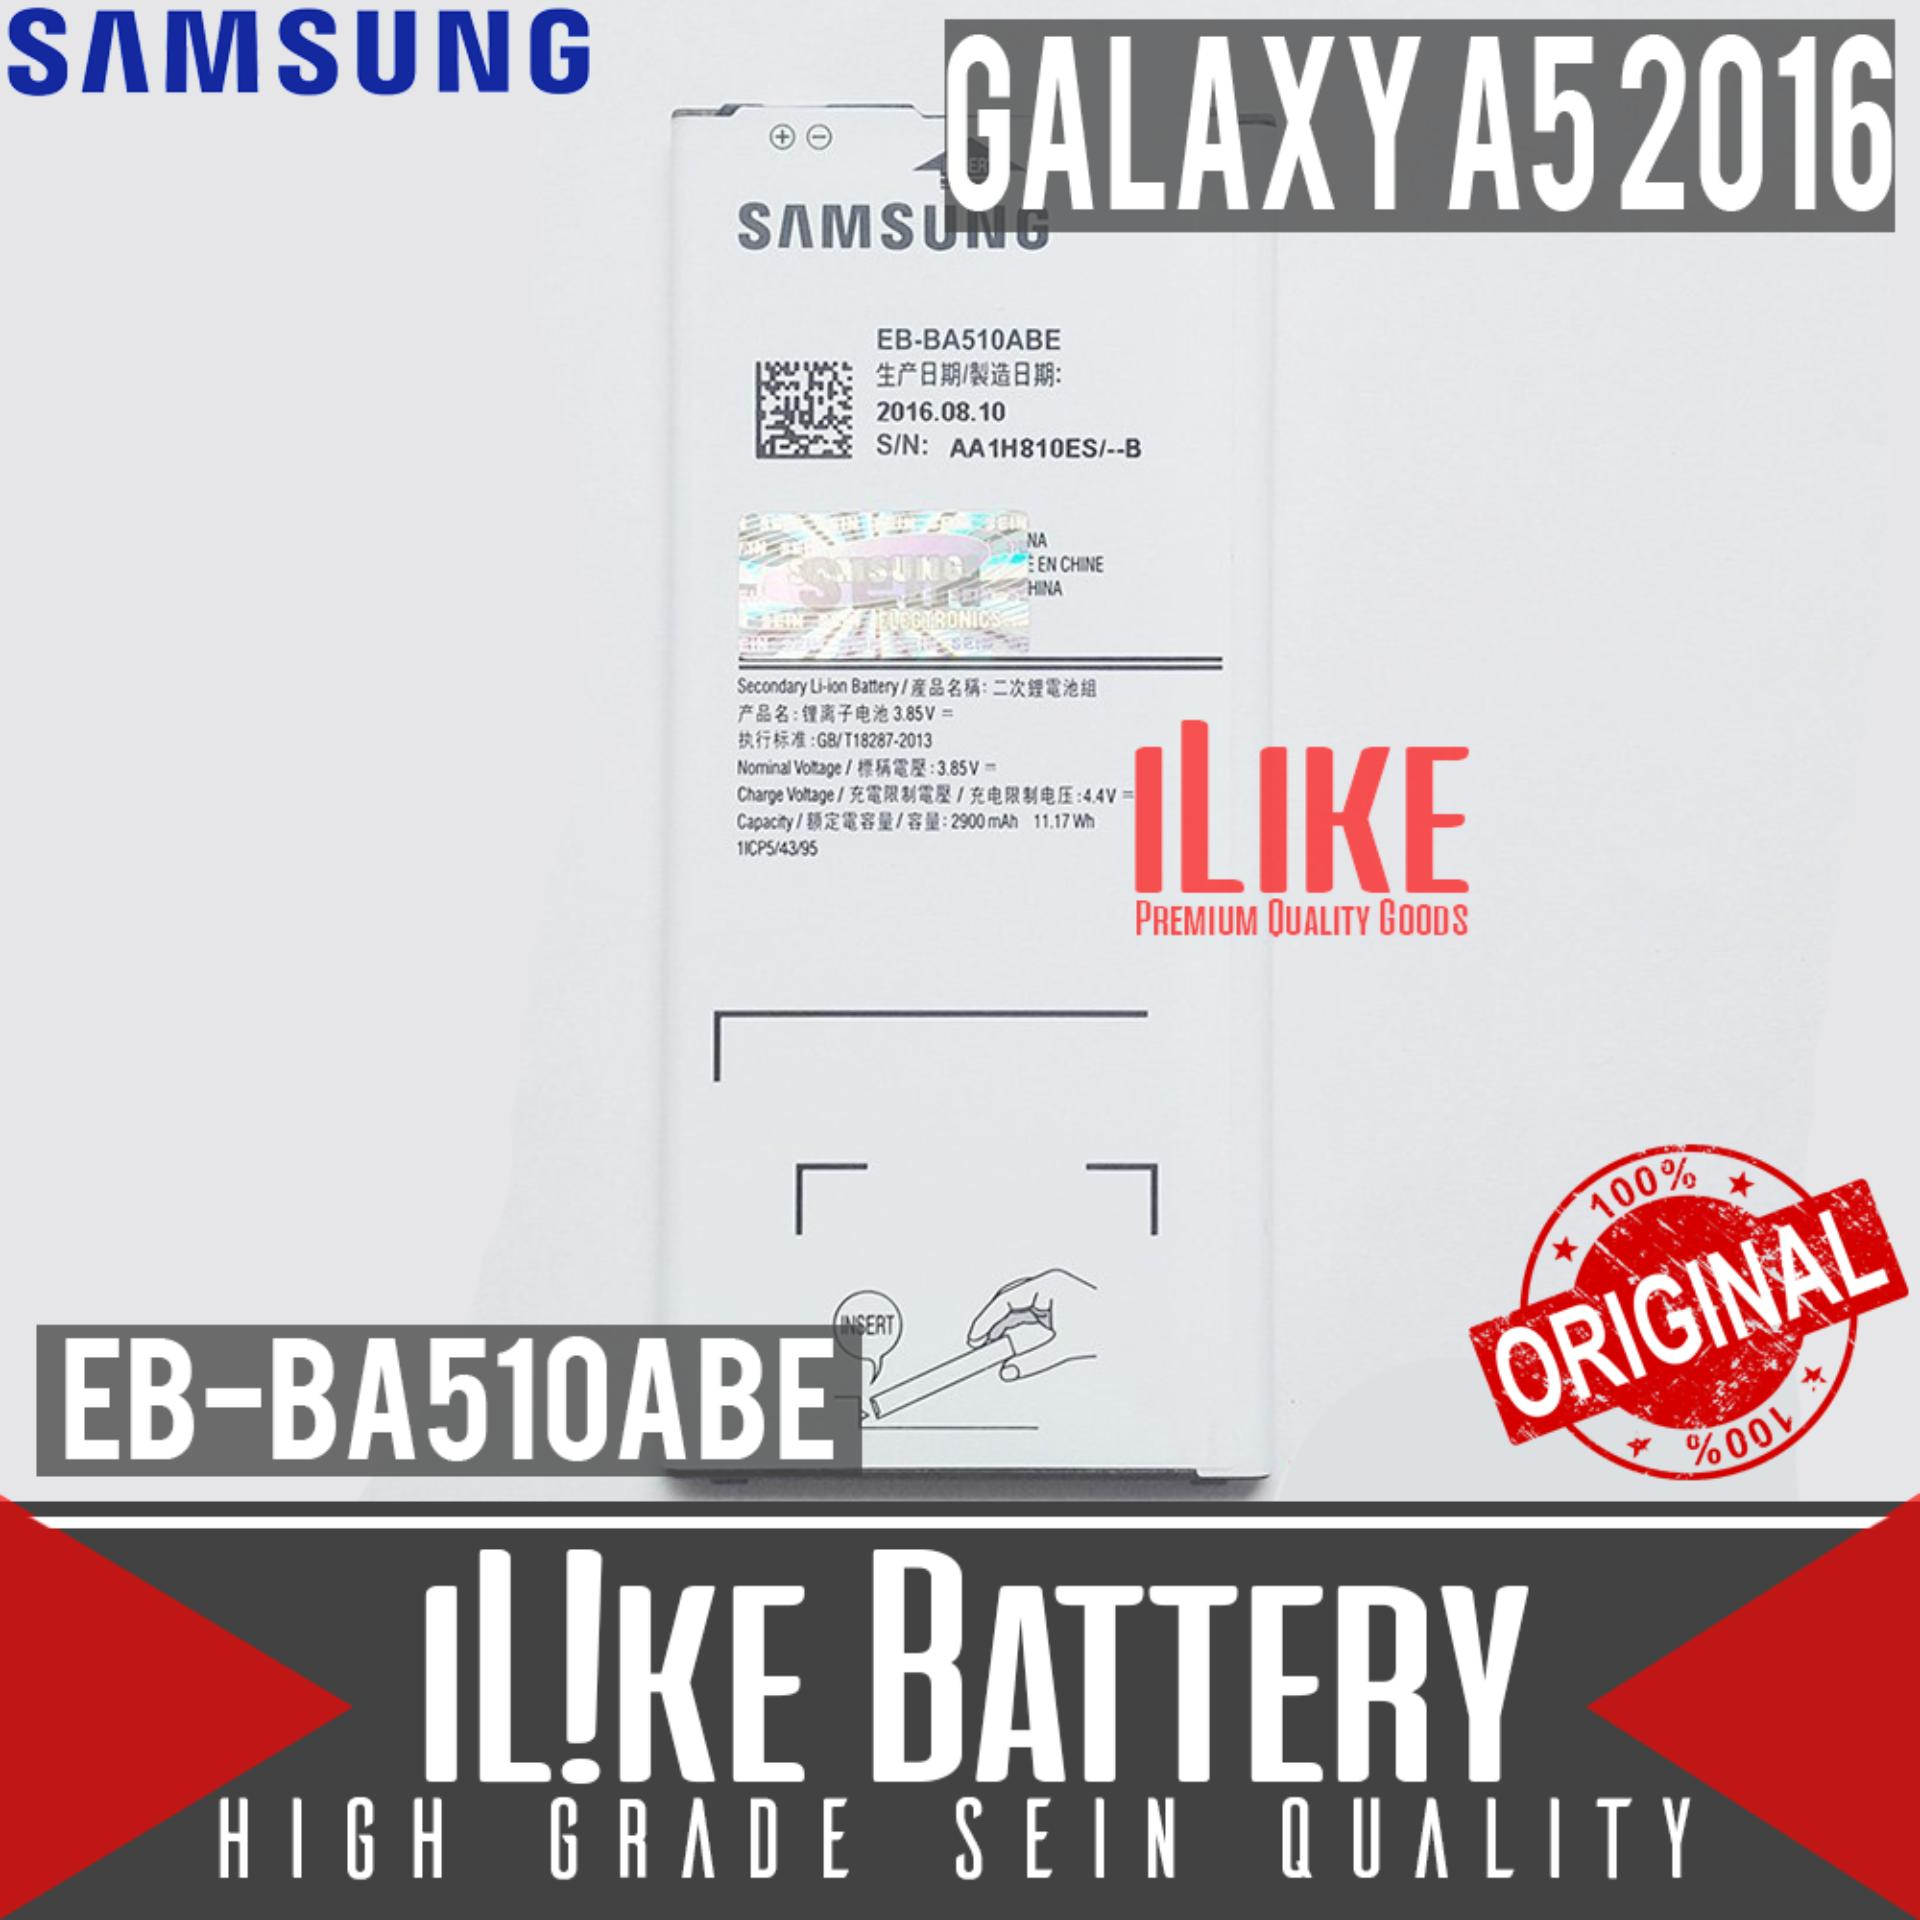 Buy Sell Cheapest Samsung Galaxy A510 Best Quality Product Deals Backdoor Tutup Casing Belakang A5 2016 Ilike Baterai Premium High Grade Sein Battery